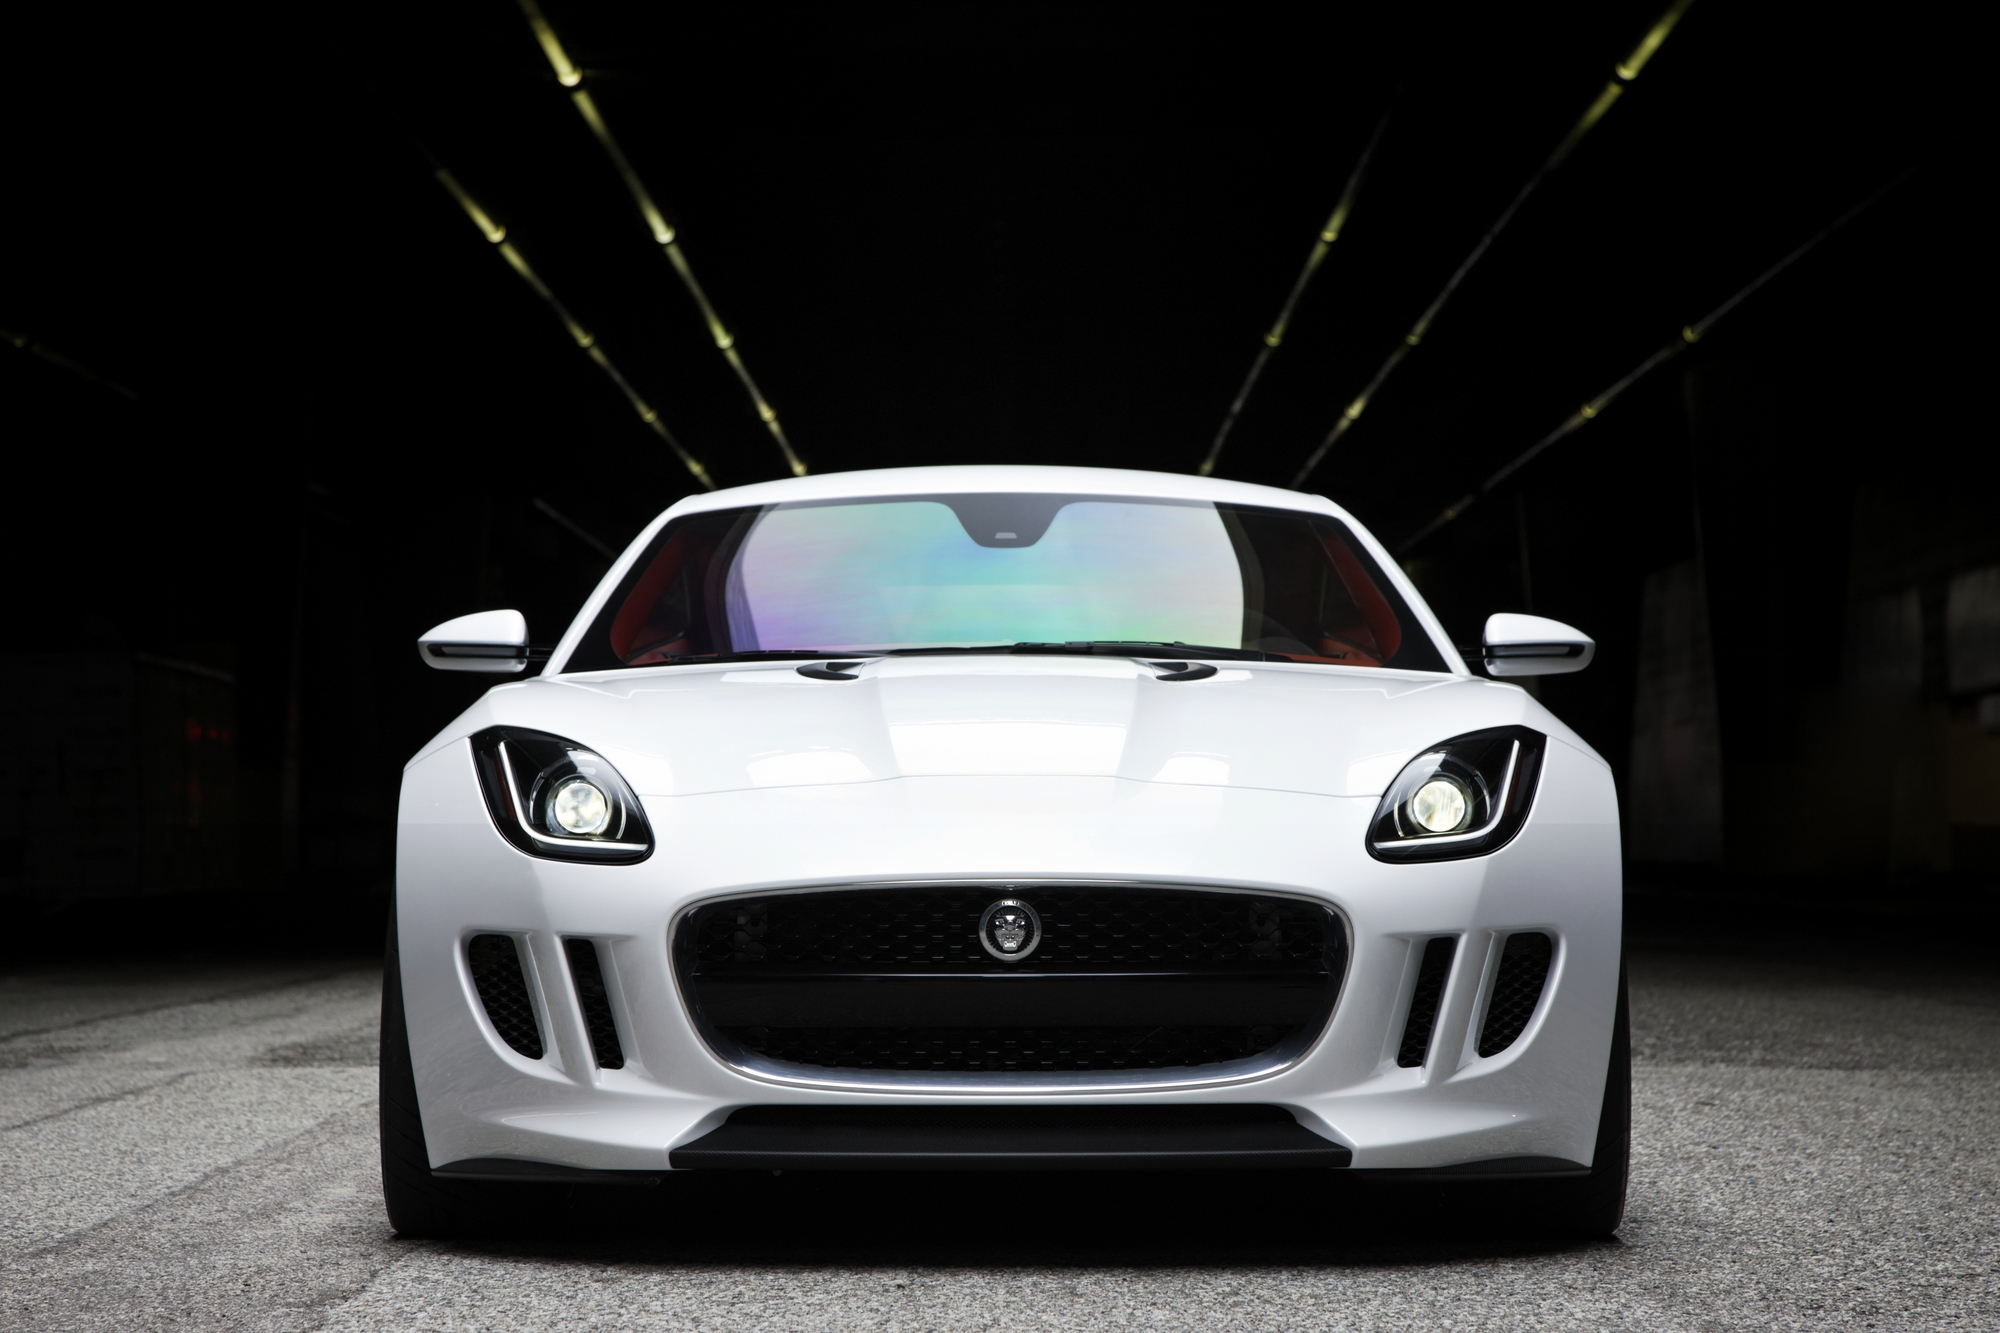 White Jaguar Car Wallpaper Mobile